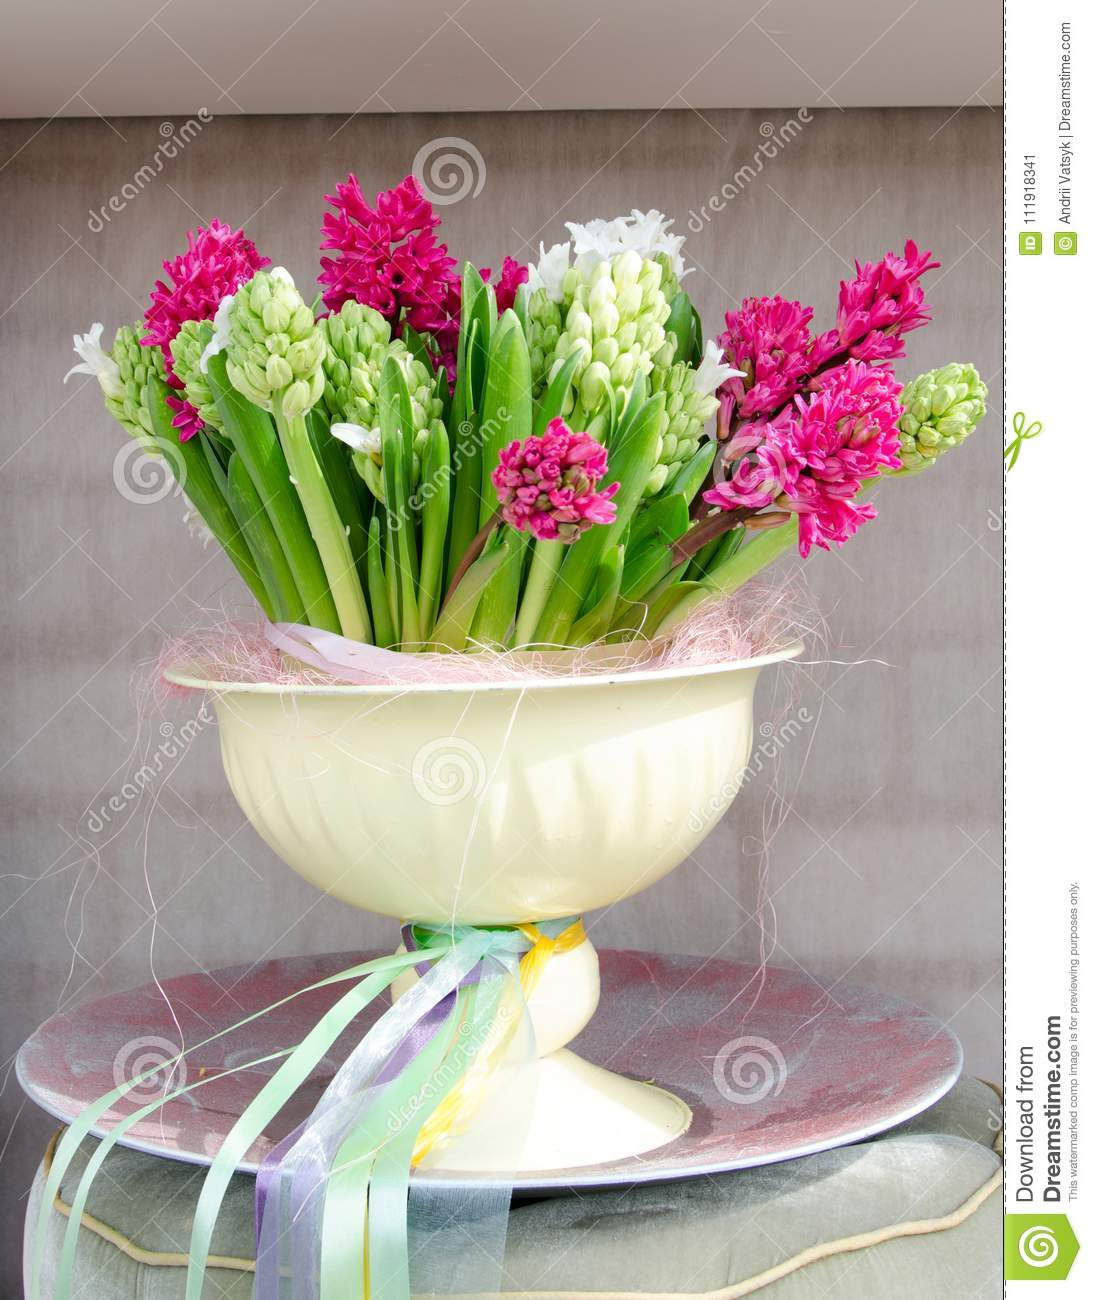 Beautiful scenery with flowers in a bowl in a niche on the wall download beautiful scenery with flowers in a bowl in a niche on the wall stock image izmirmasajfo